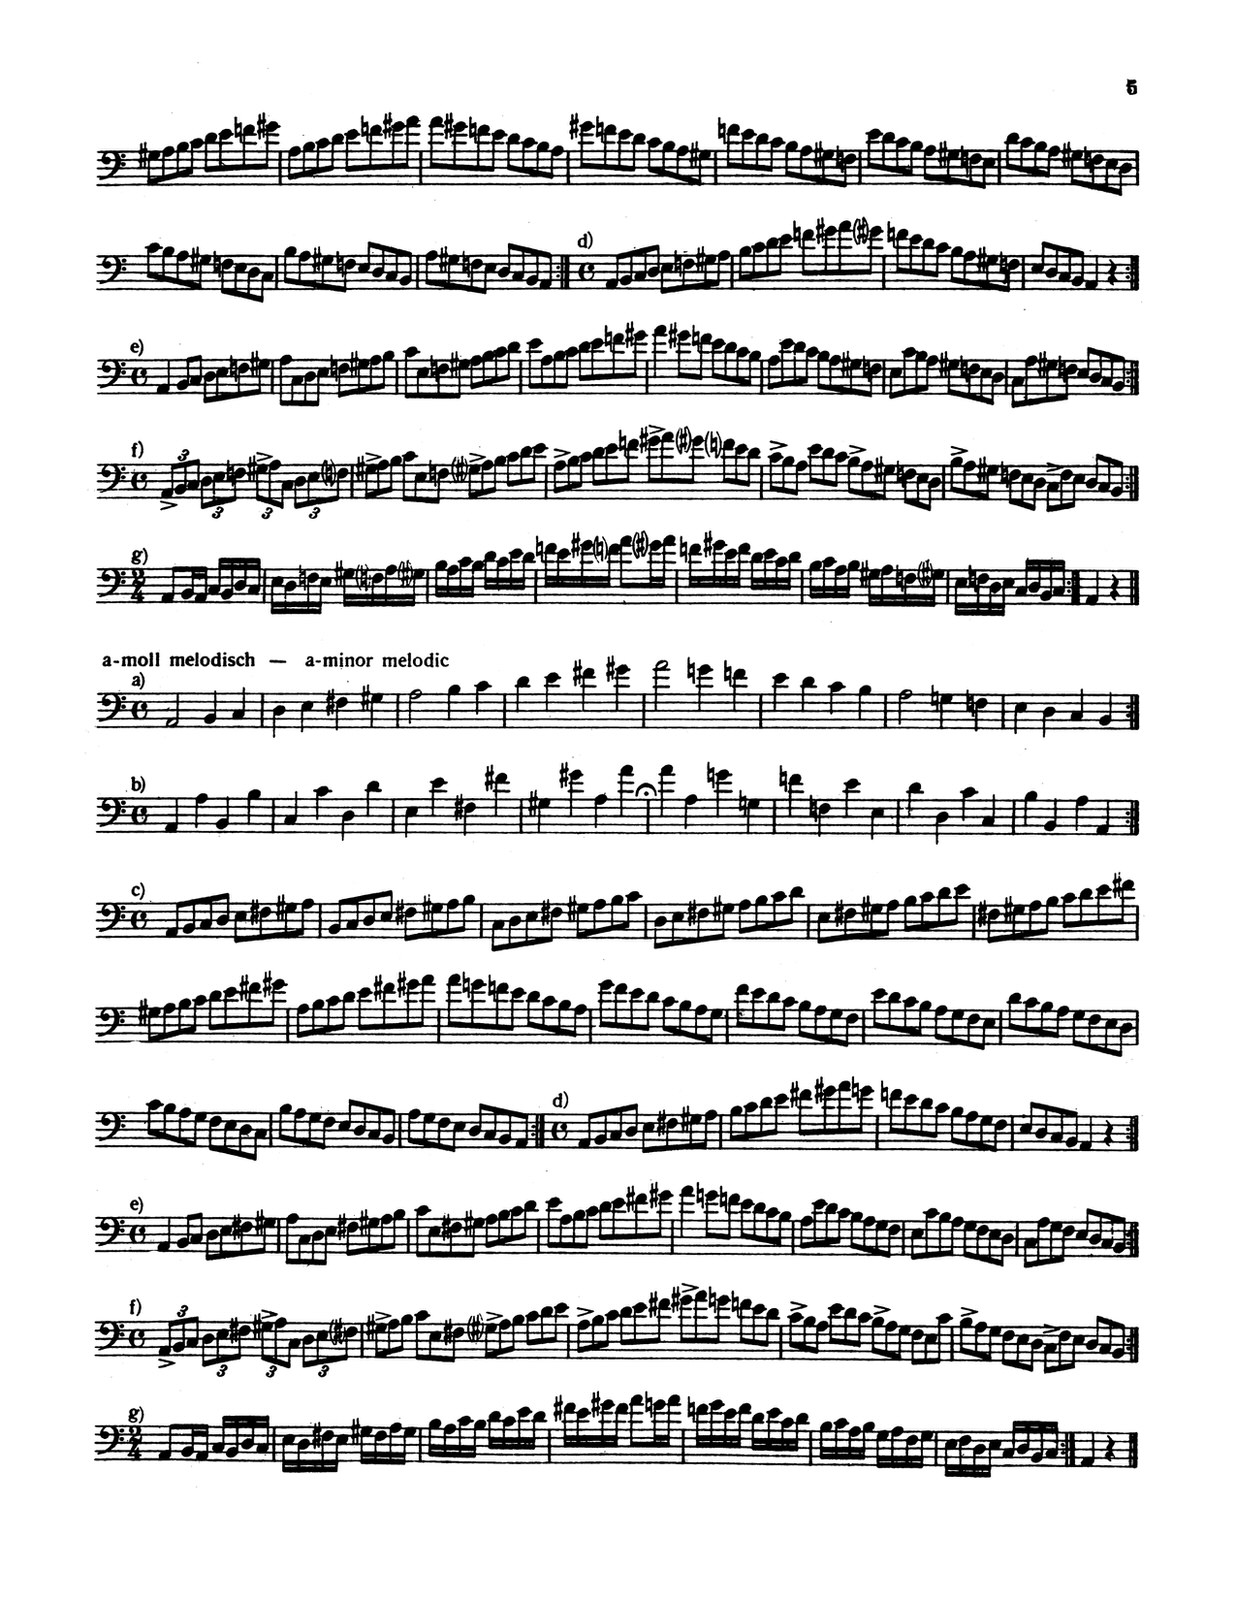 gaetke-studies-in-scales-and-arpeggios-for-trombone-part-1-3